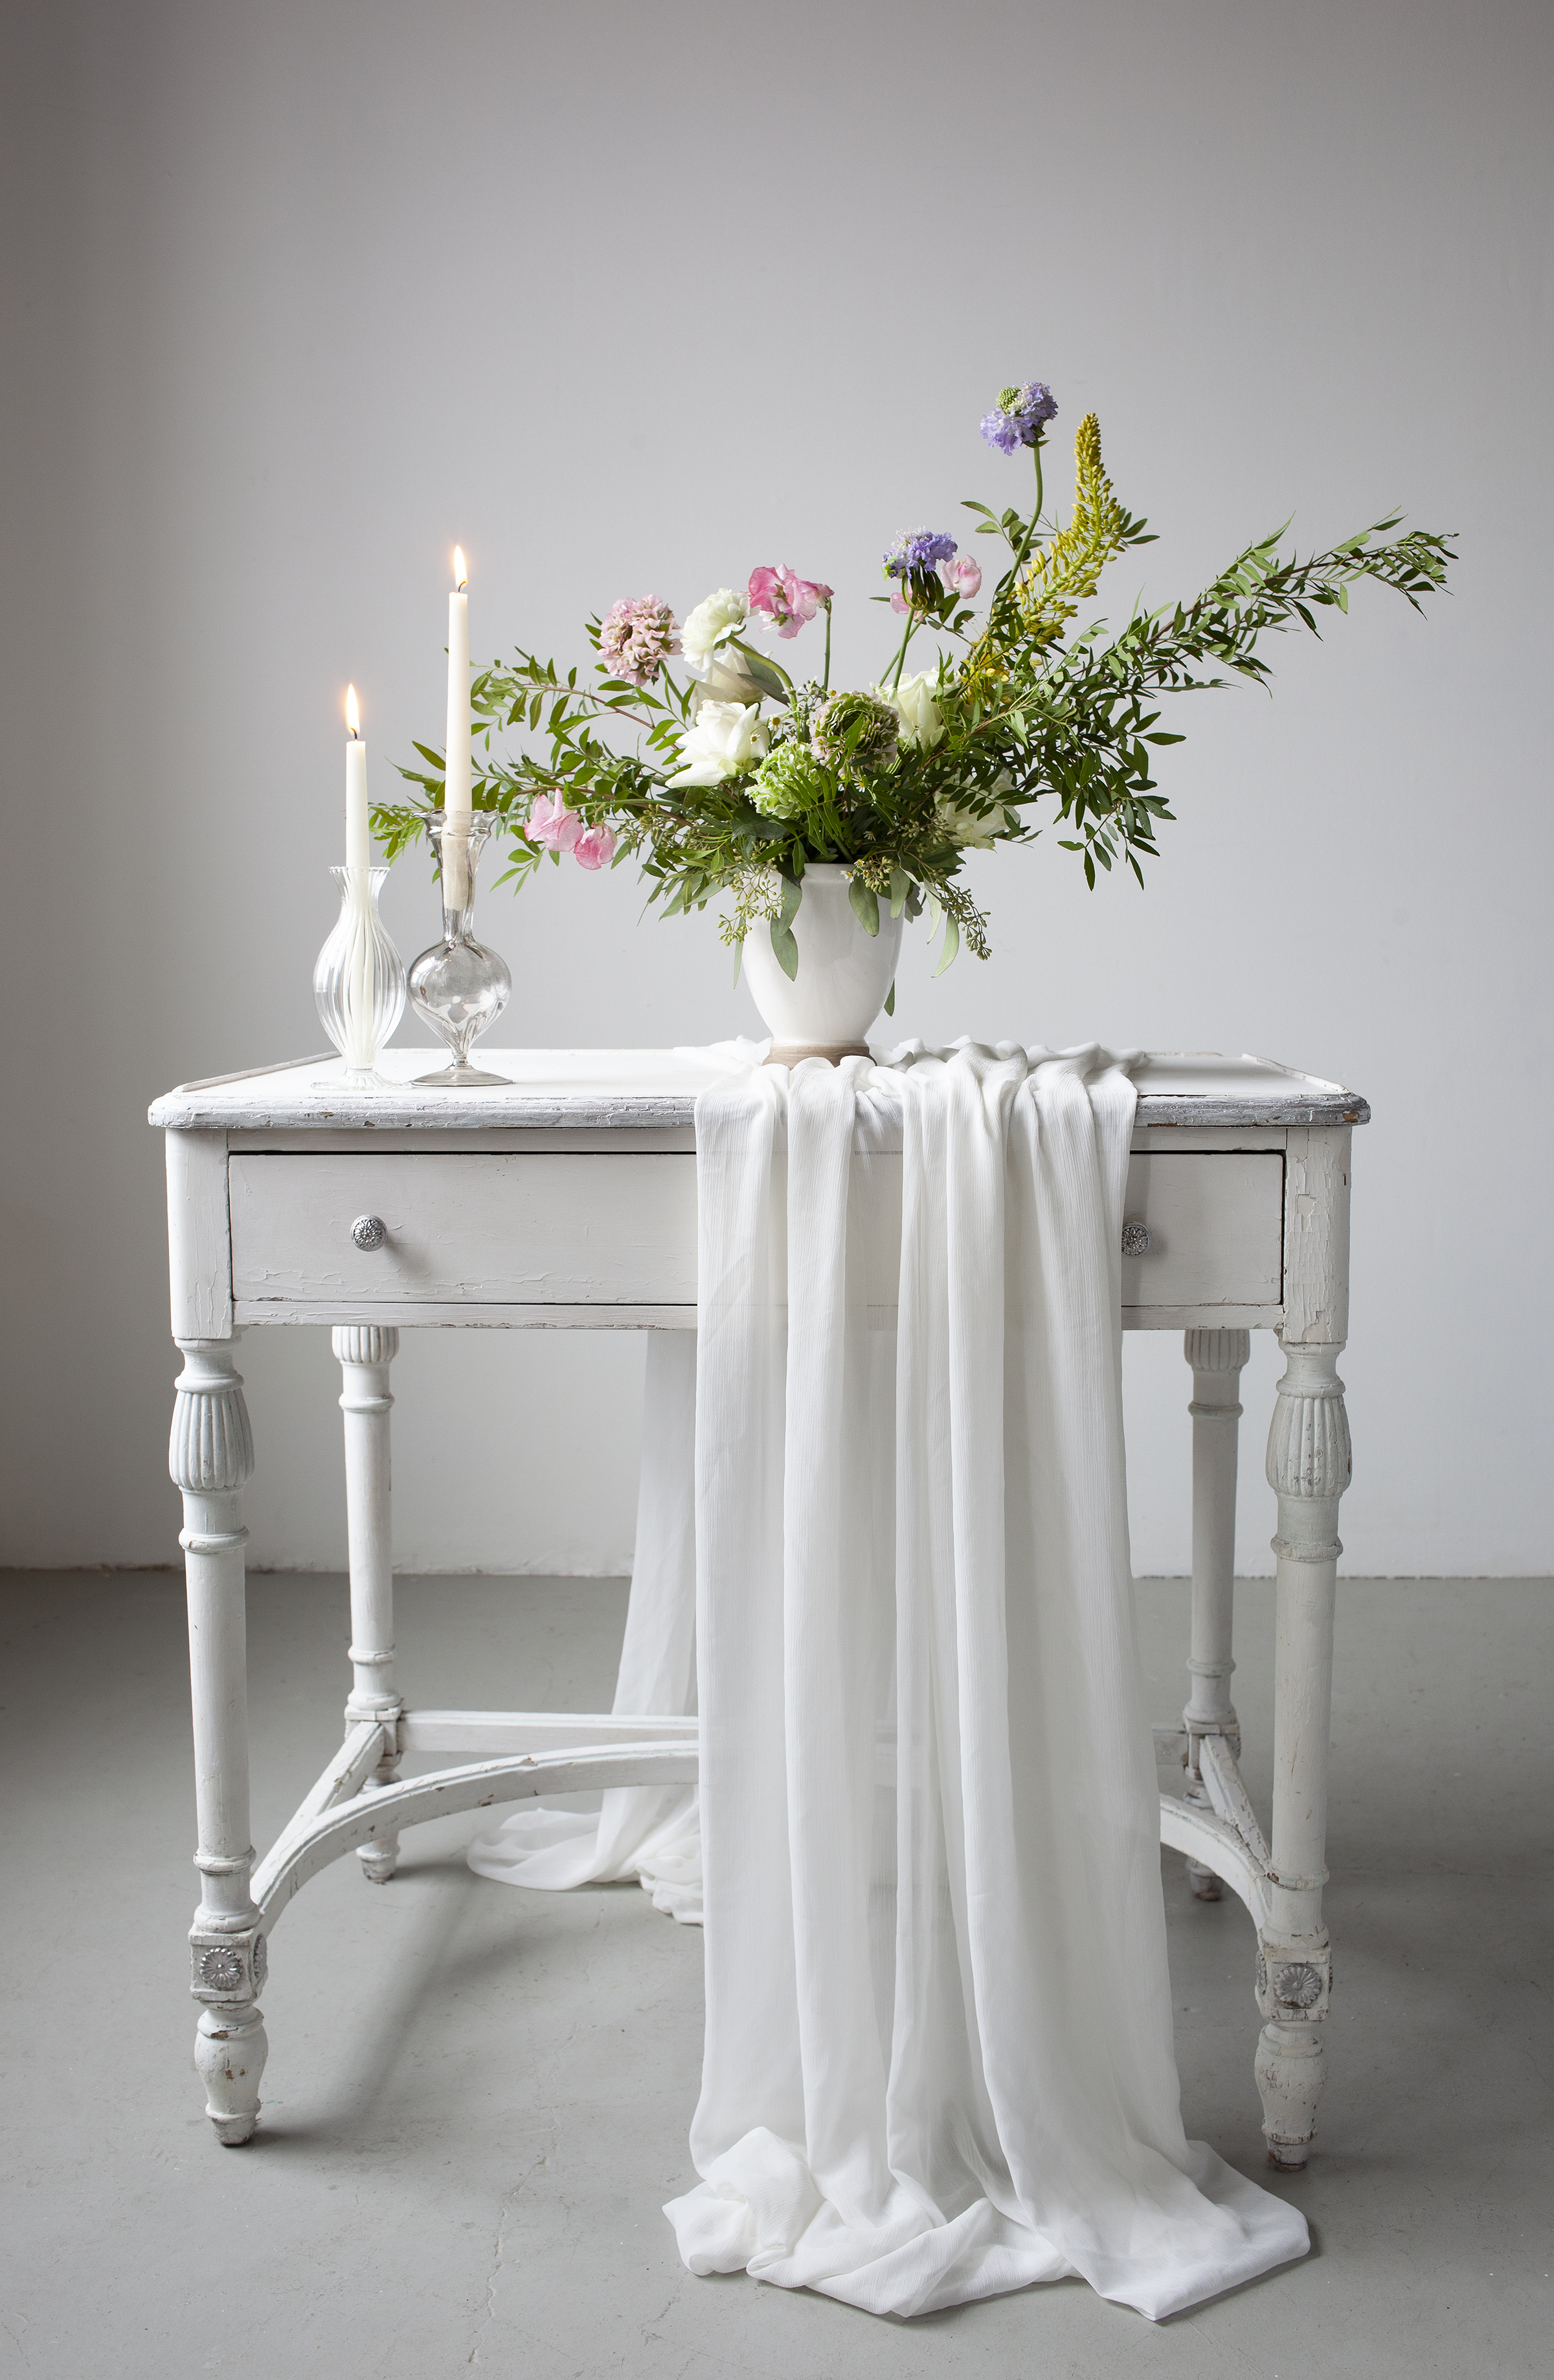 Willow & Stems Workshop, styled & photographed by Madame Blanche Rentals